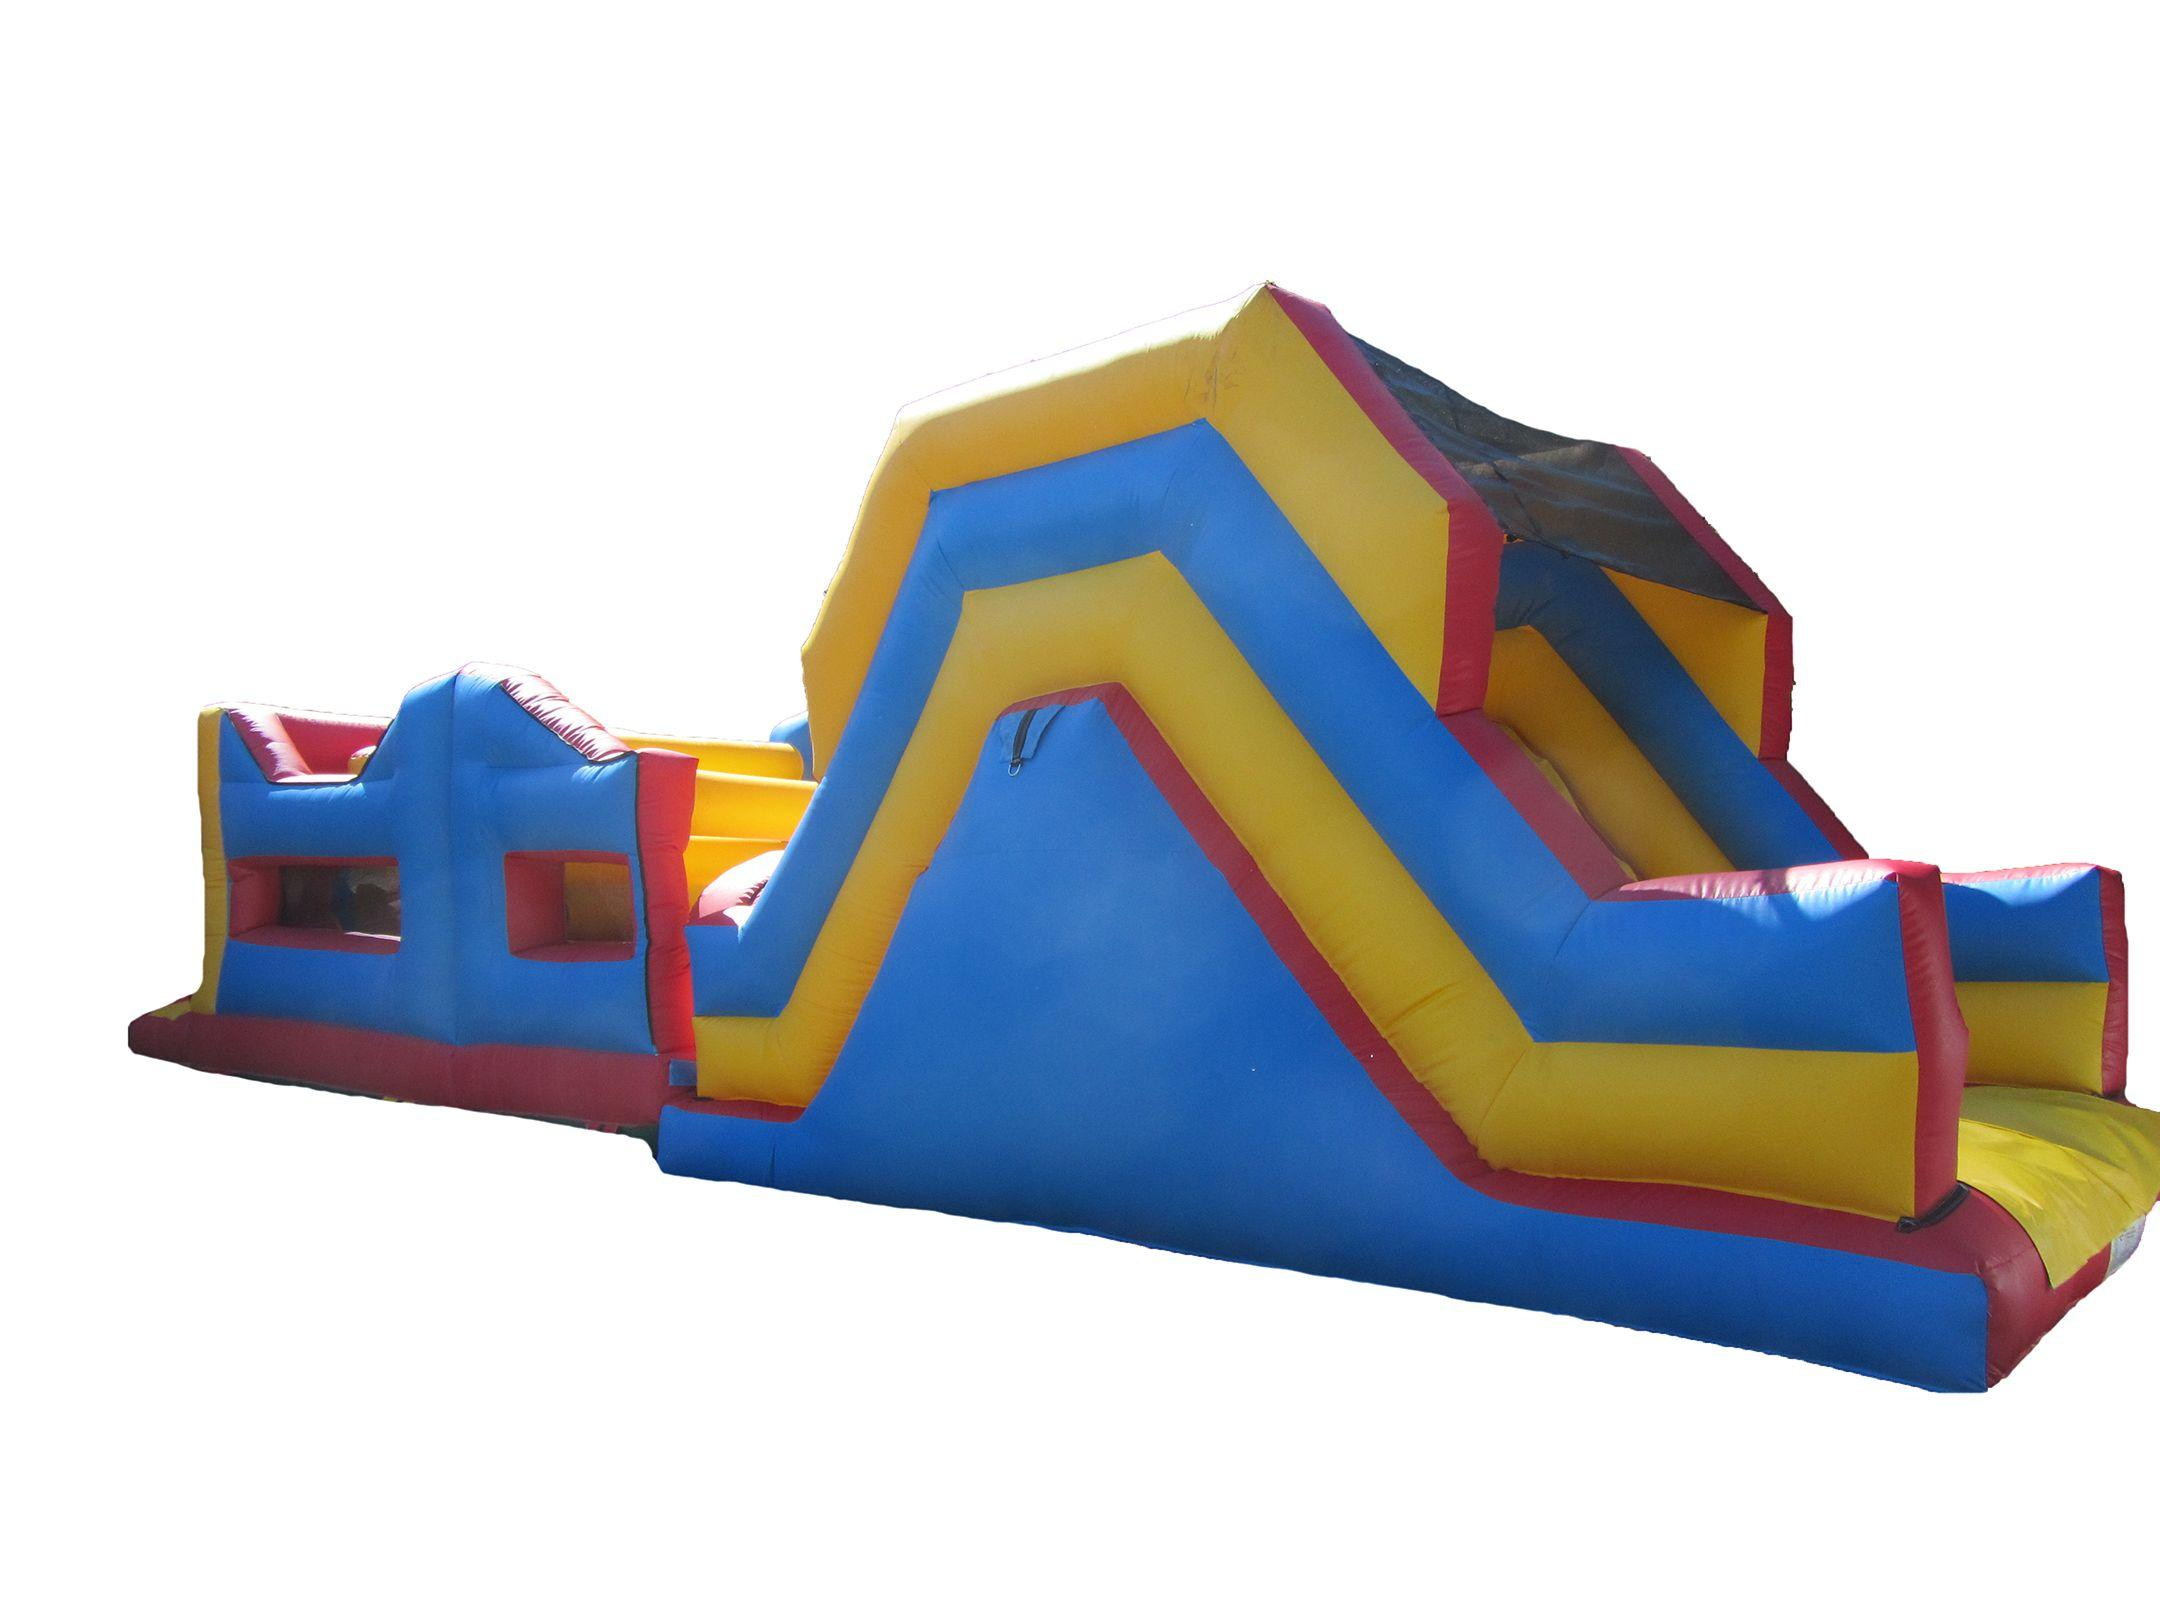 Unisex Inflatable Obstacle Course